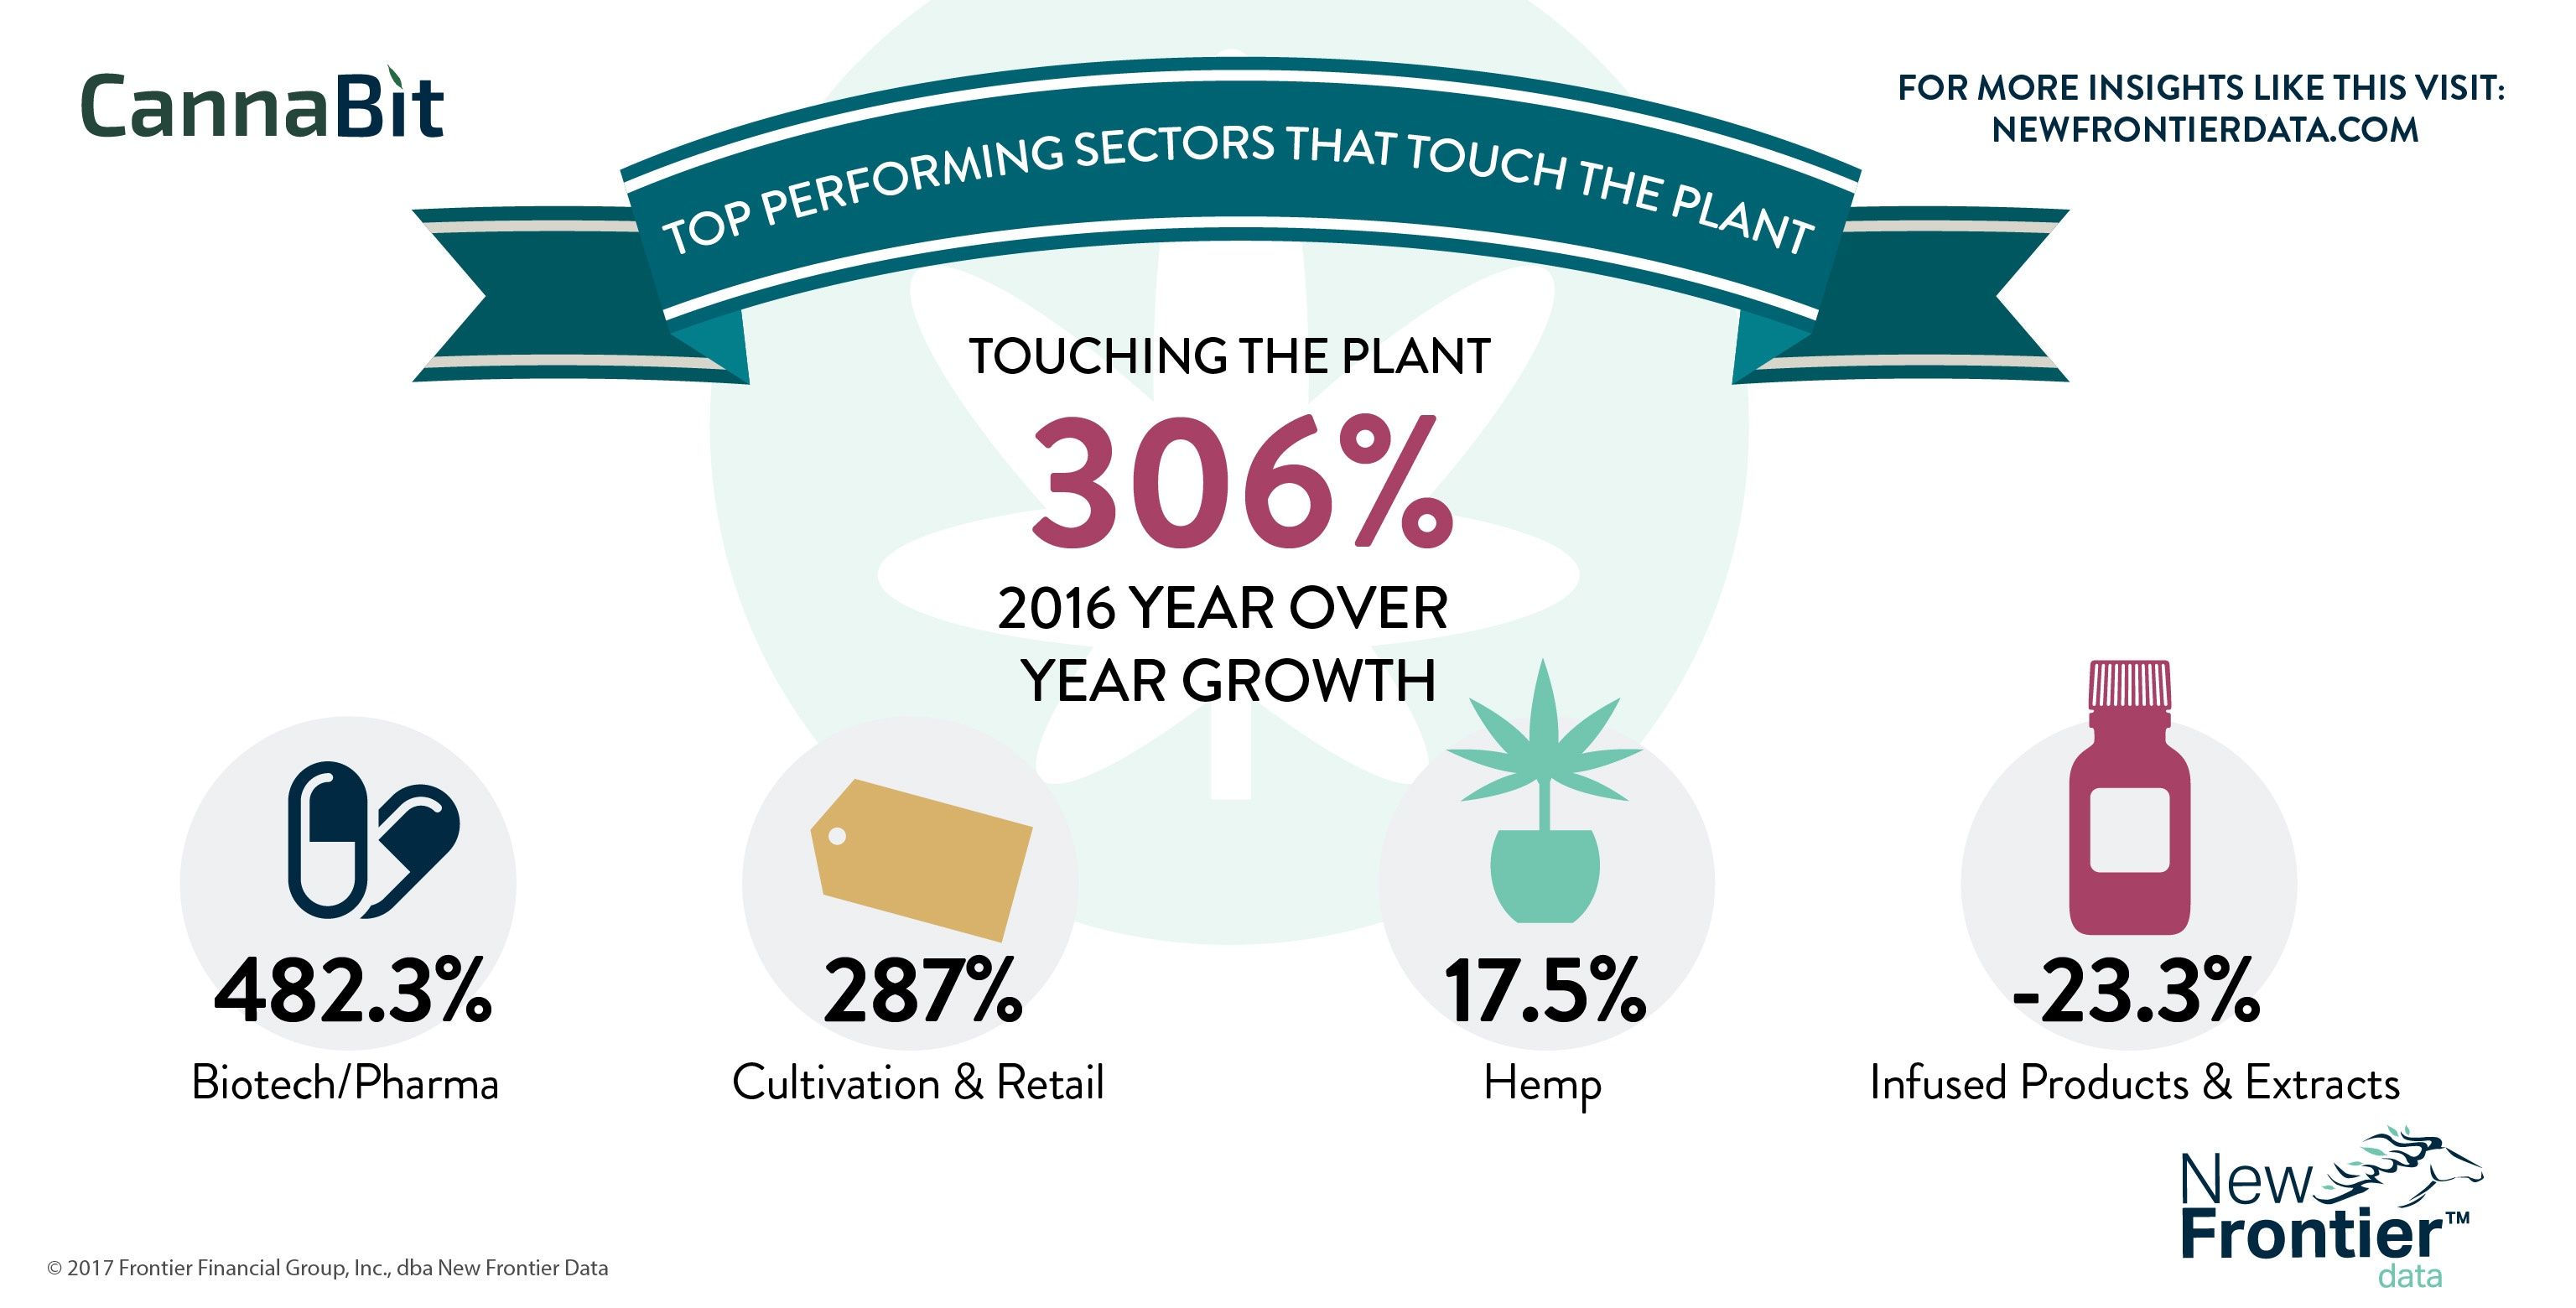 Cannabit: Top Performing Sectors that Touch the Plant/ 06112017